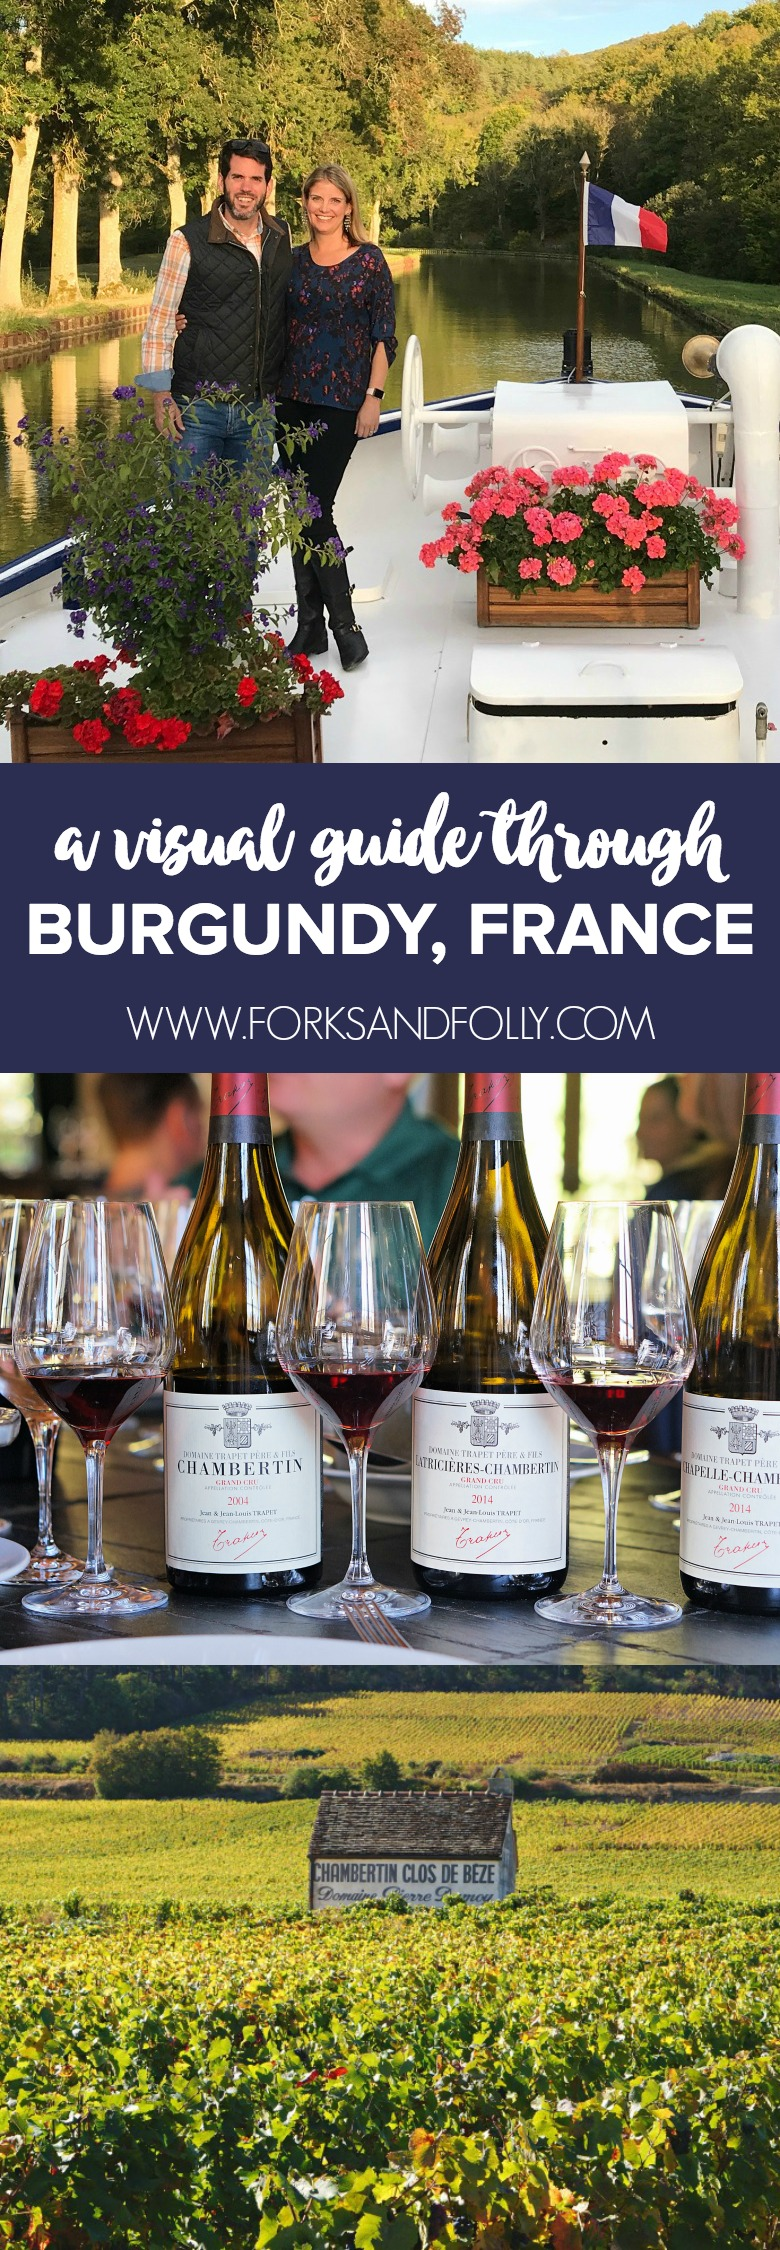 A Visual Guide through Burgundy, France